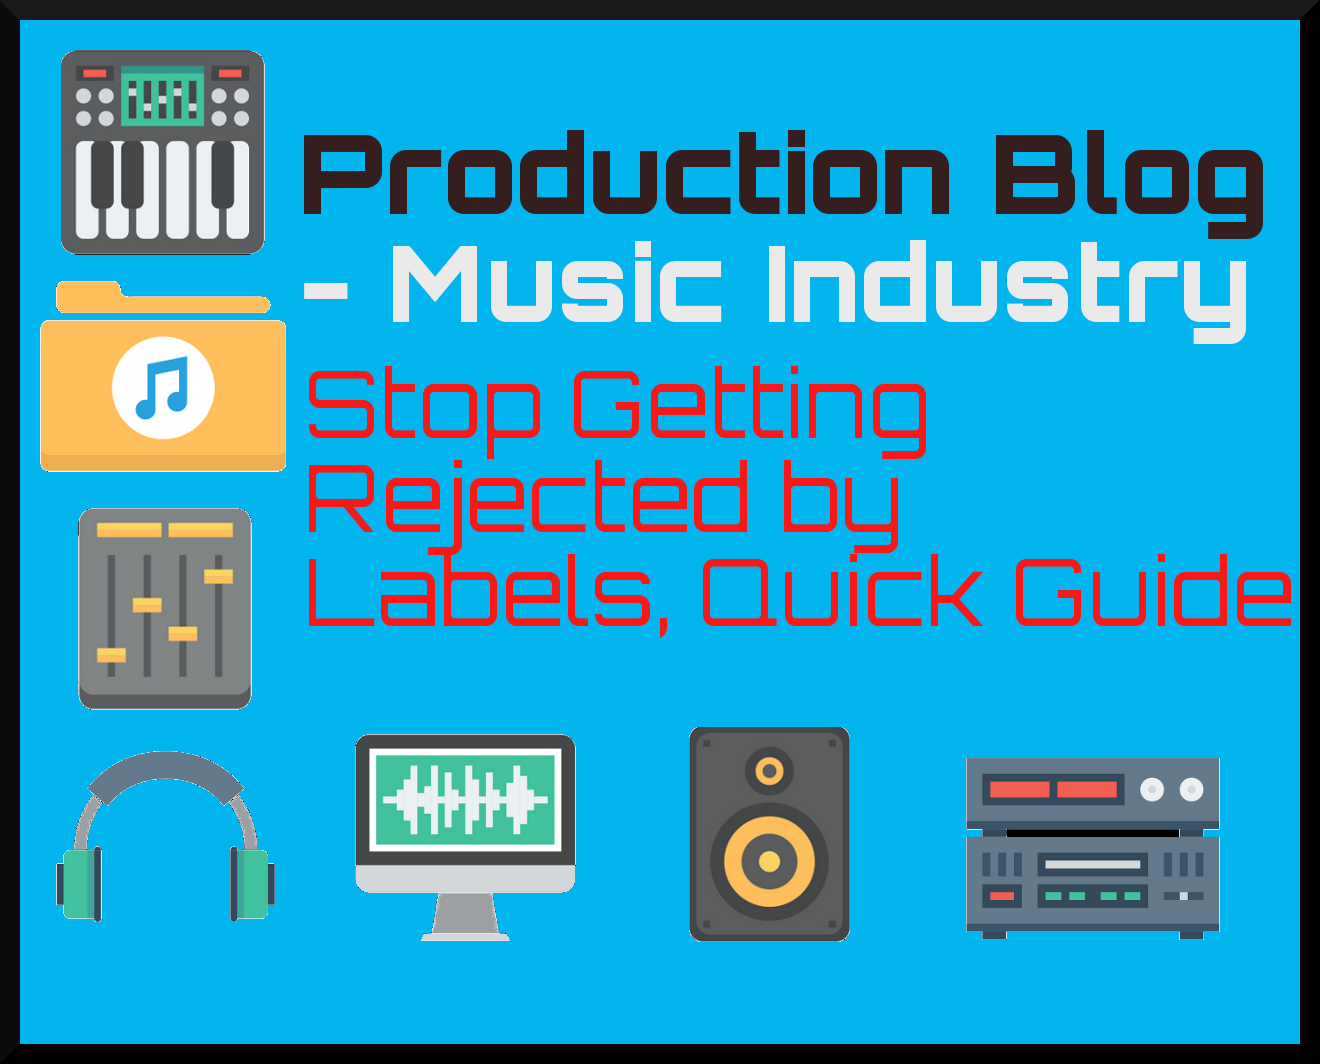 Stop Getting Rejected by Record Labels, Quick Guide — Nyonyxx